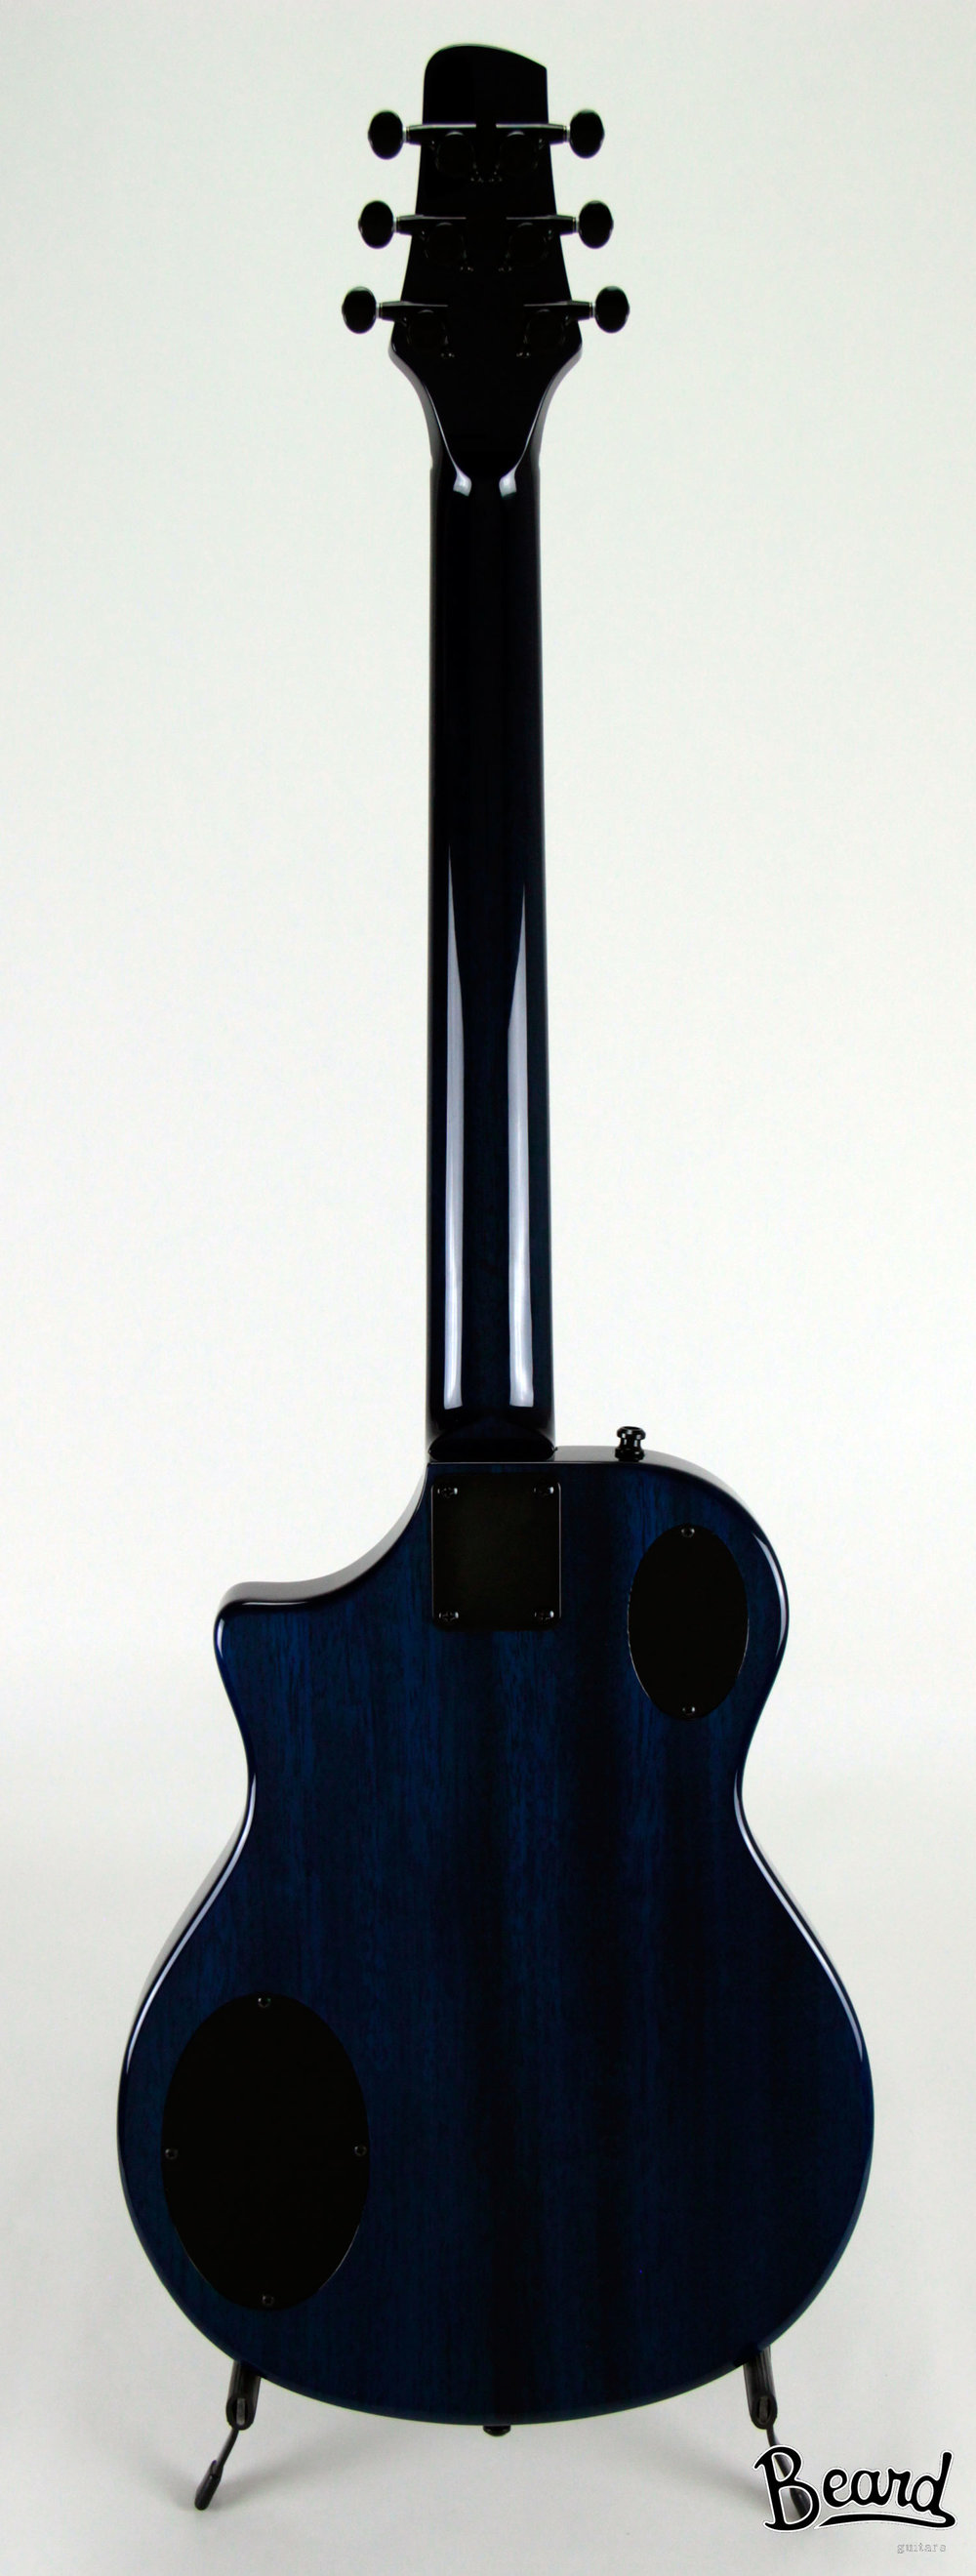 MPS-Maple-Top-Blueburst-FB.jpg